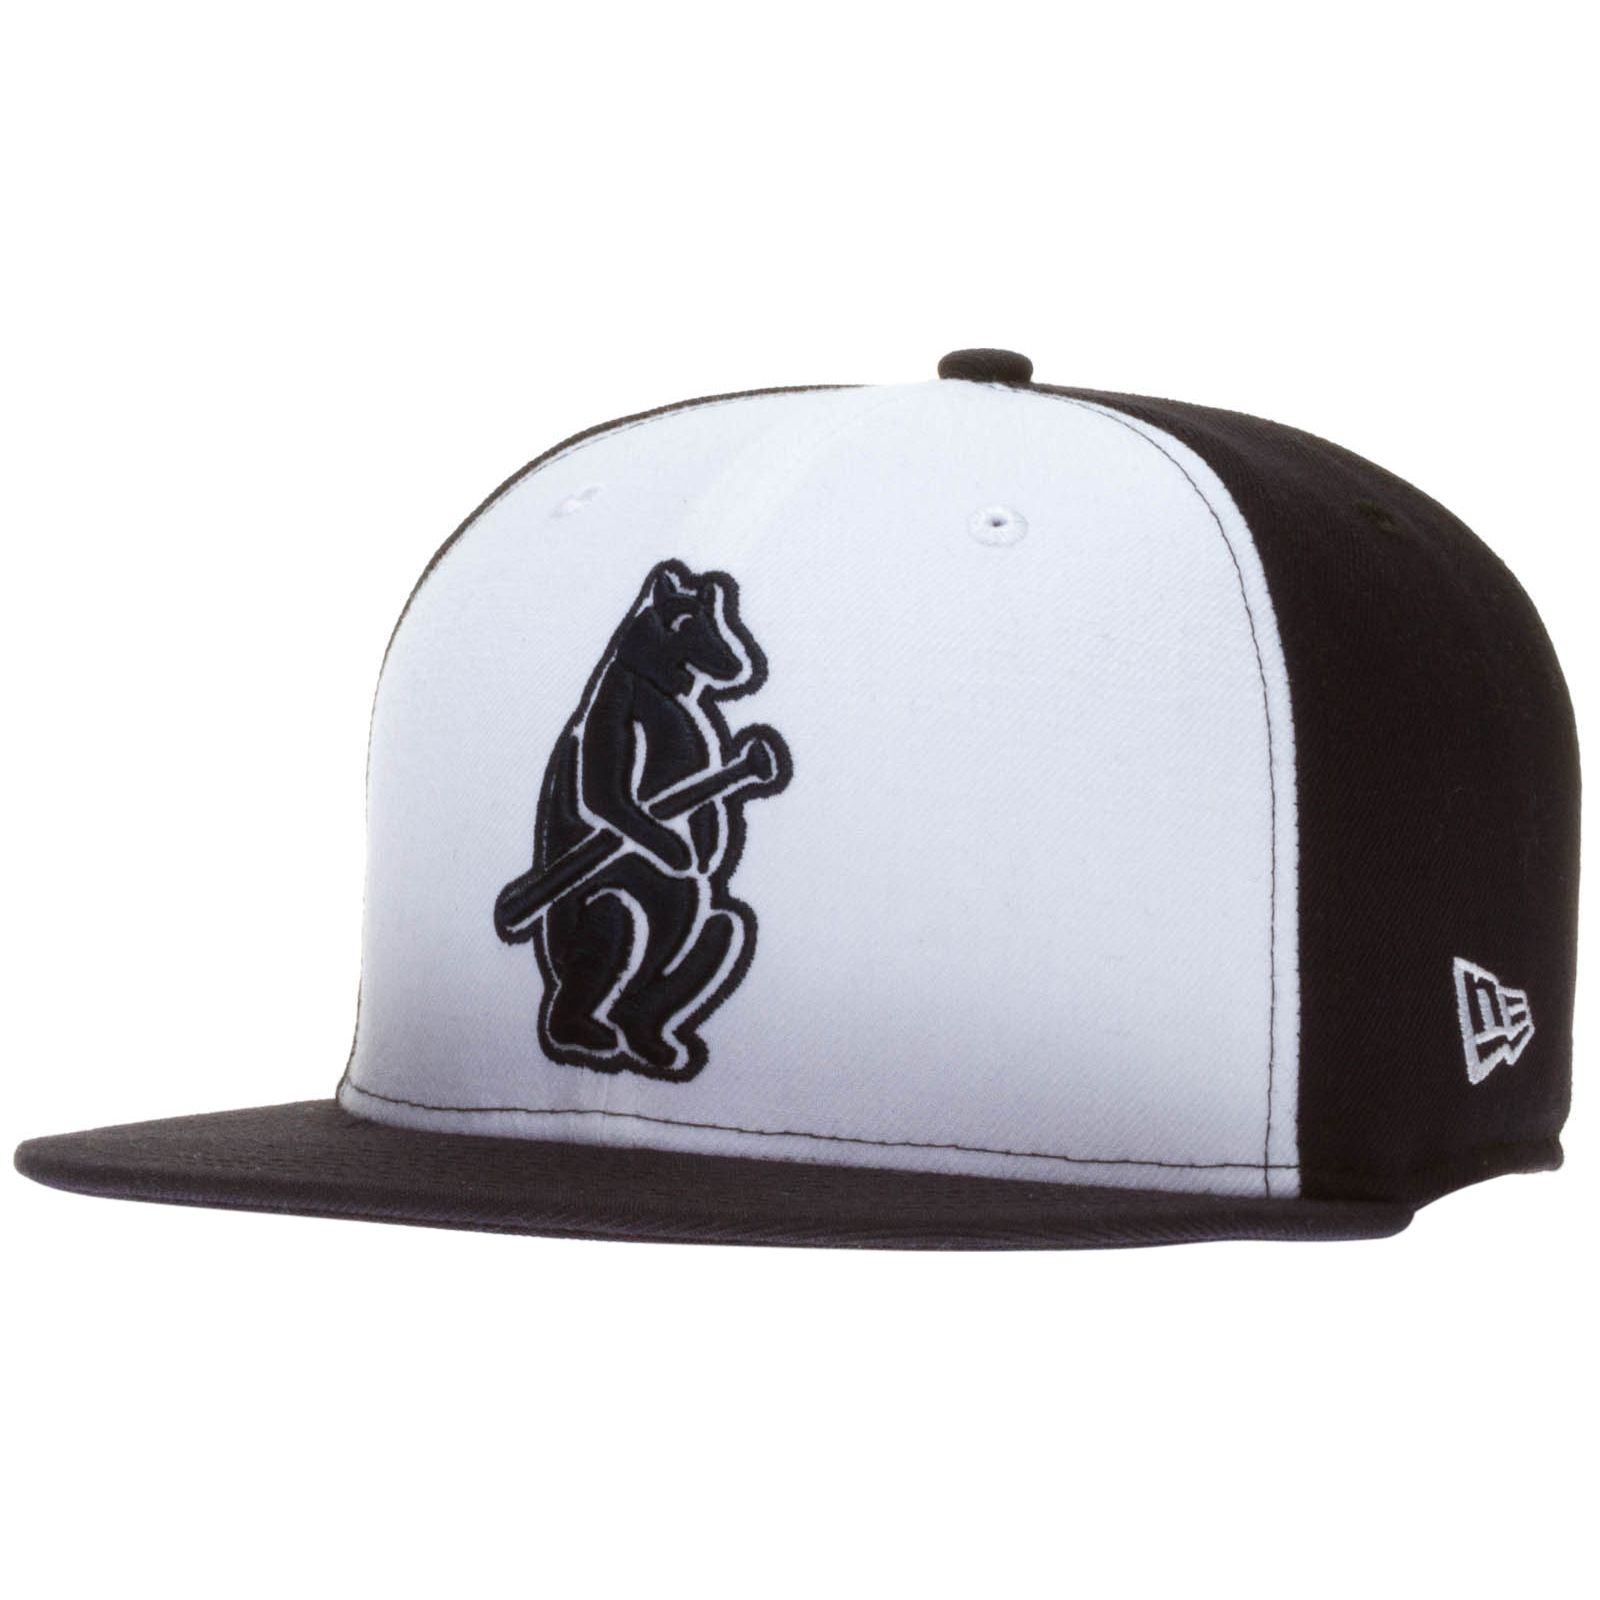 03ab071d19e Chicago Cubs White and Navy Over-Size 1914 Bear with Bat Logo Snapback Hat  by New Era  Chicago  Cubs  ChicagoCubs